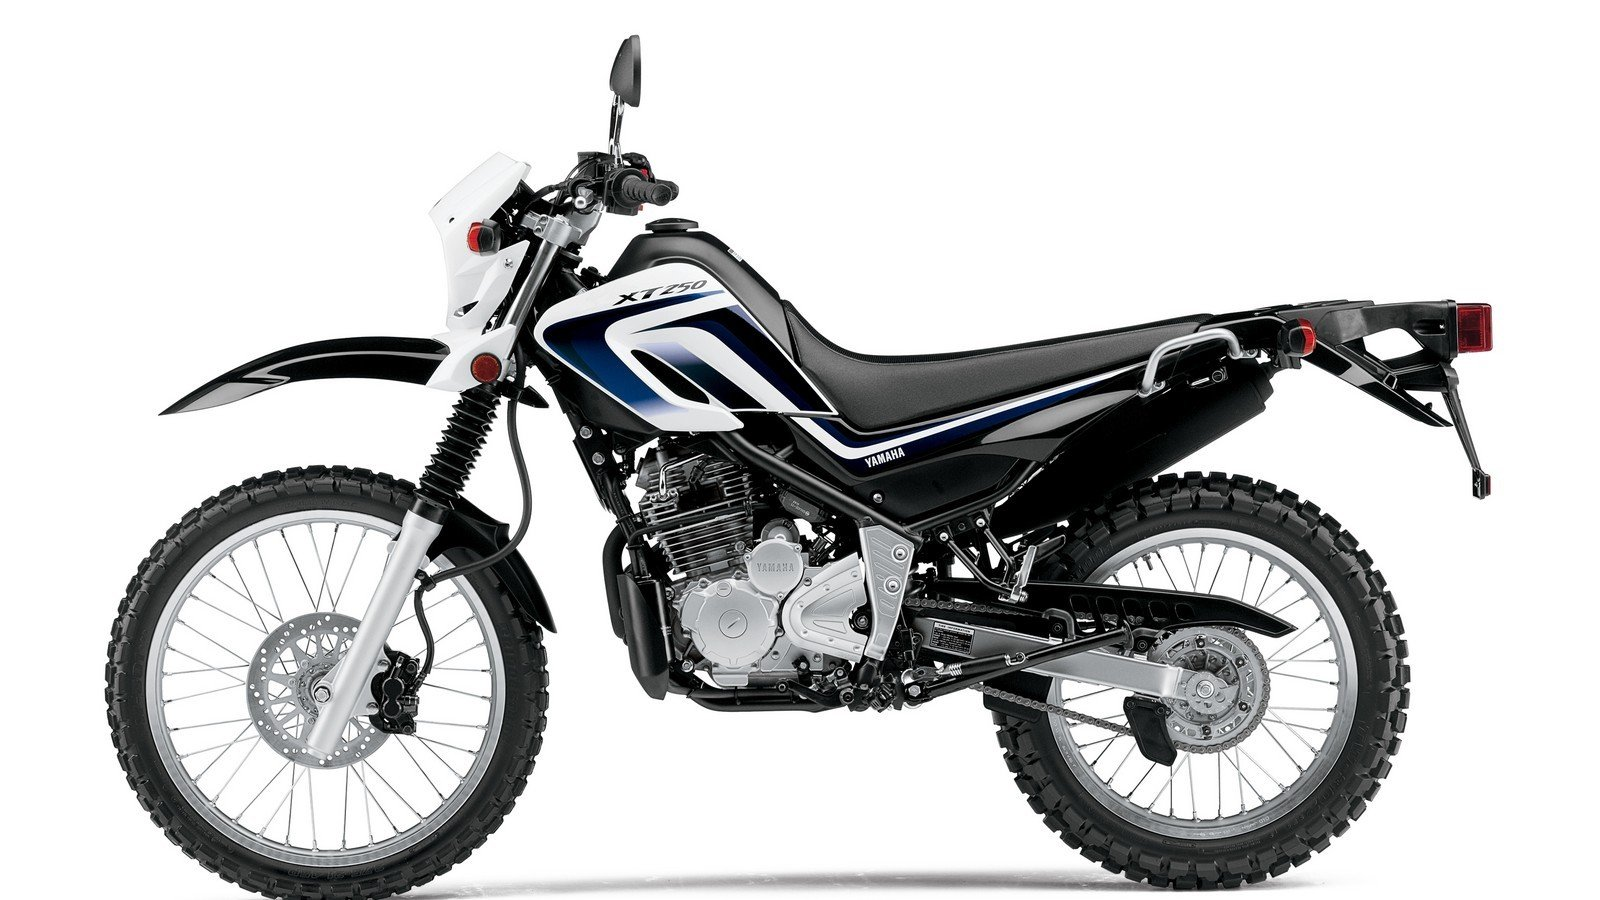 2013 yamaha xt250 picture 464418 motorcycle review for Yamaha xt250 top speed